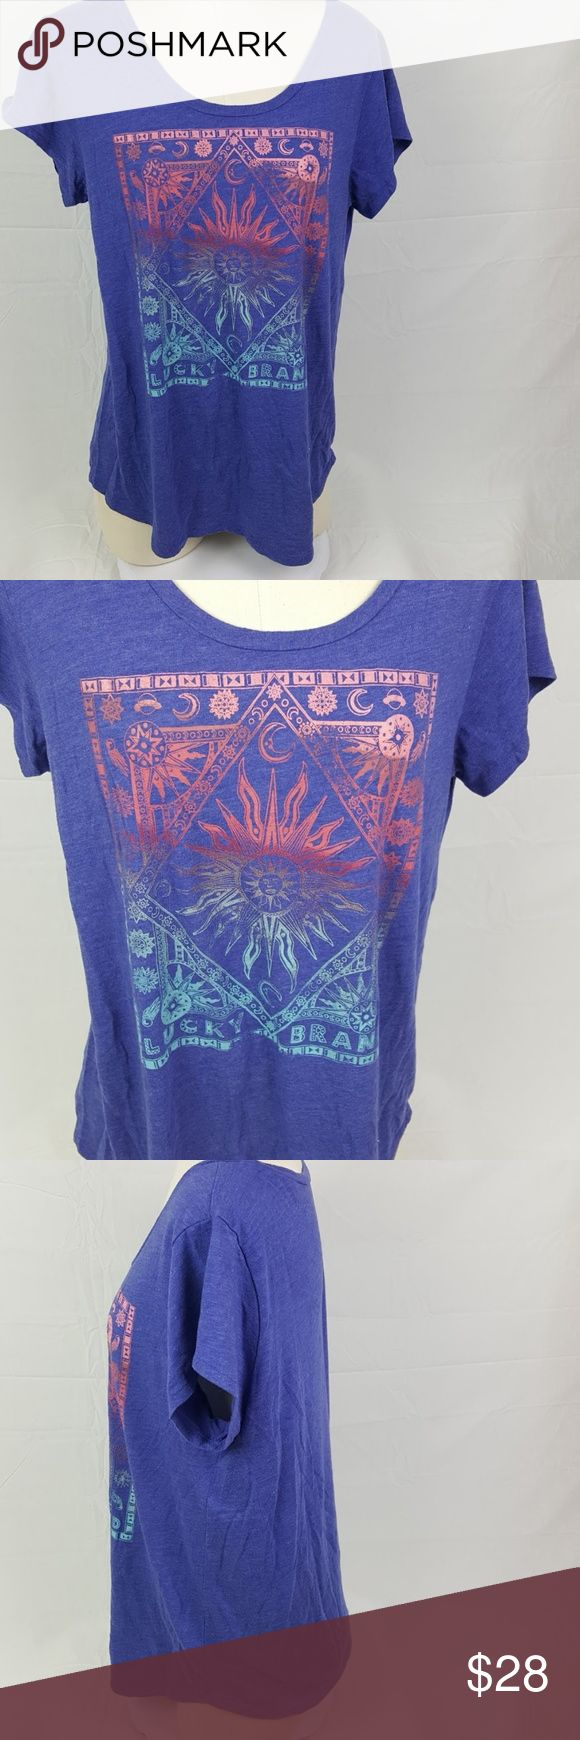 """Lucky Brand Womens Short Sleeve T-Shirt Aztec NWOT Brand new, arrived with no tags.  26"""" long 21"""" chest  Bin H7 Lucky Brand Tops Tees - Short Sleeve"""